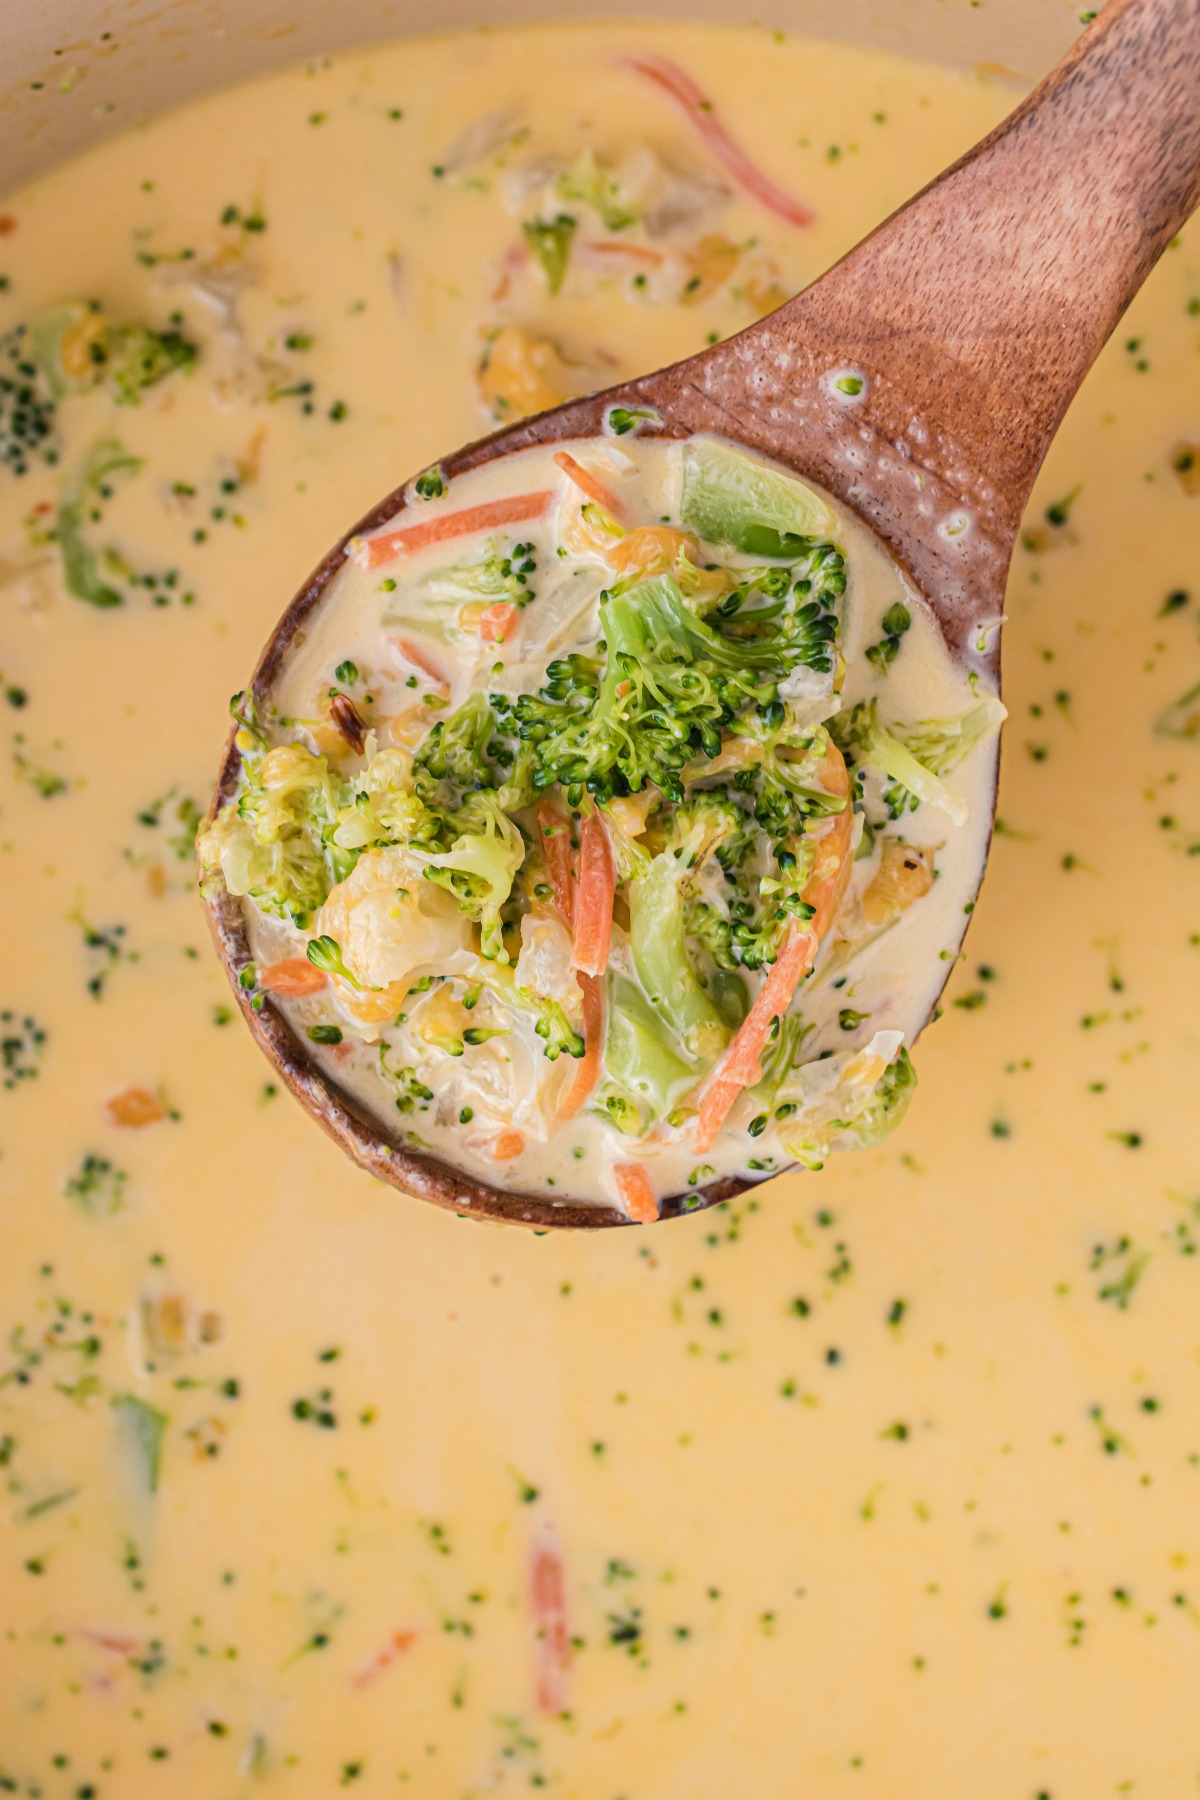 Broccoli cheese soup on ladle.